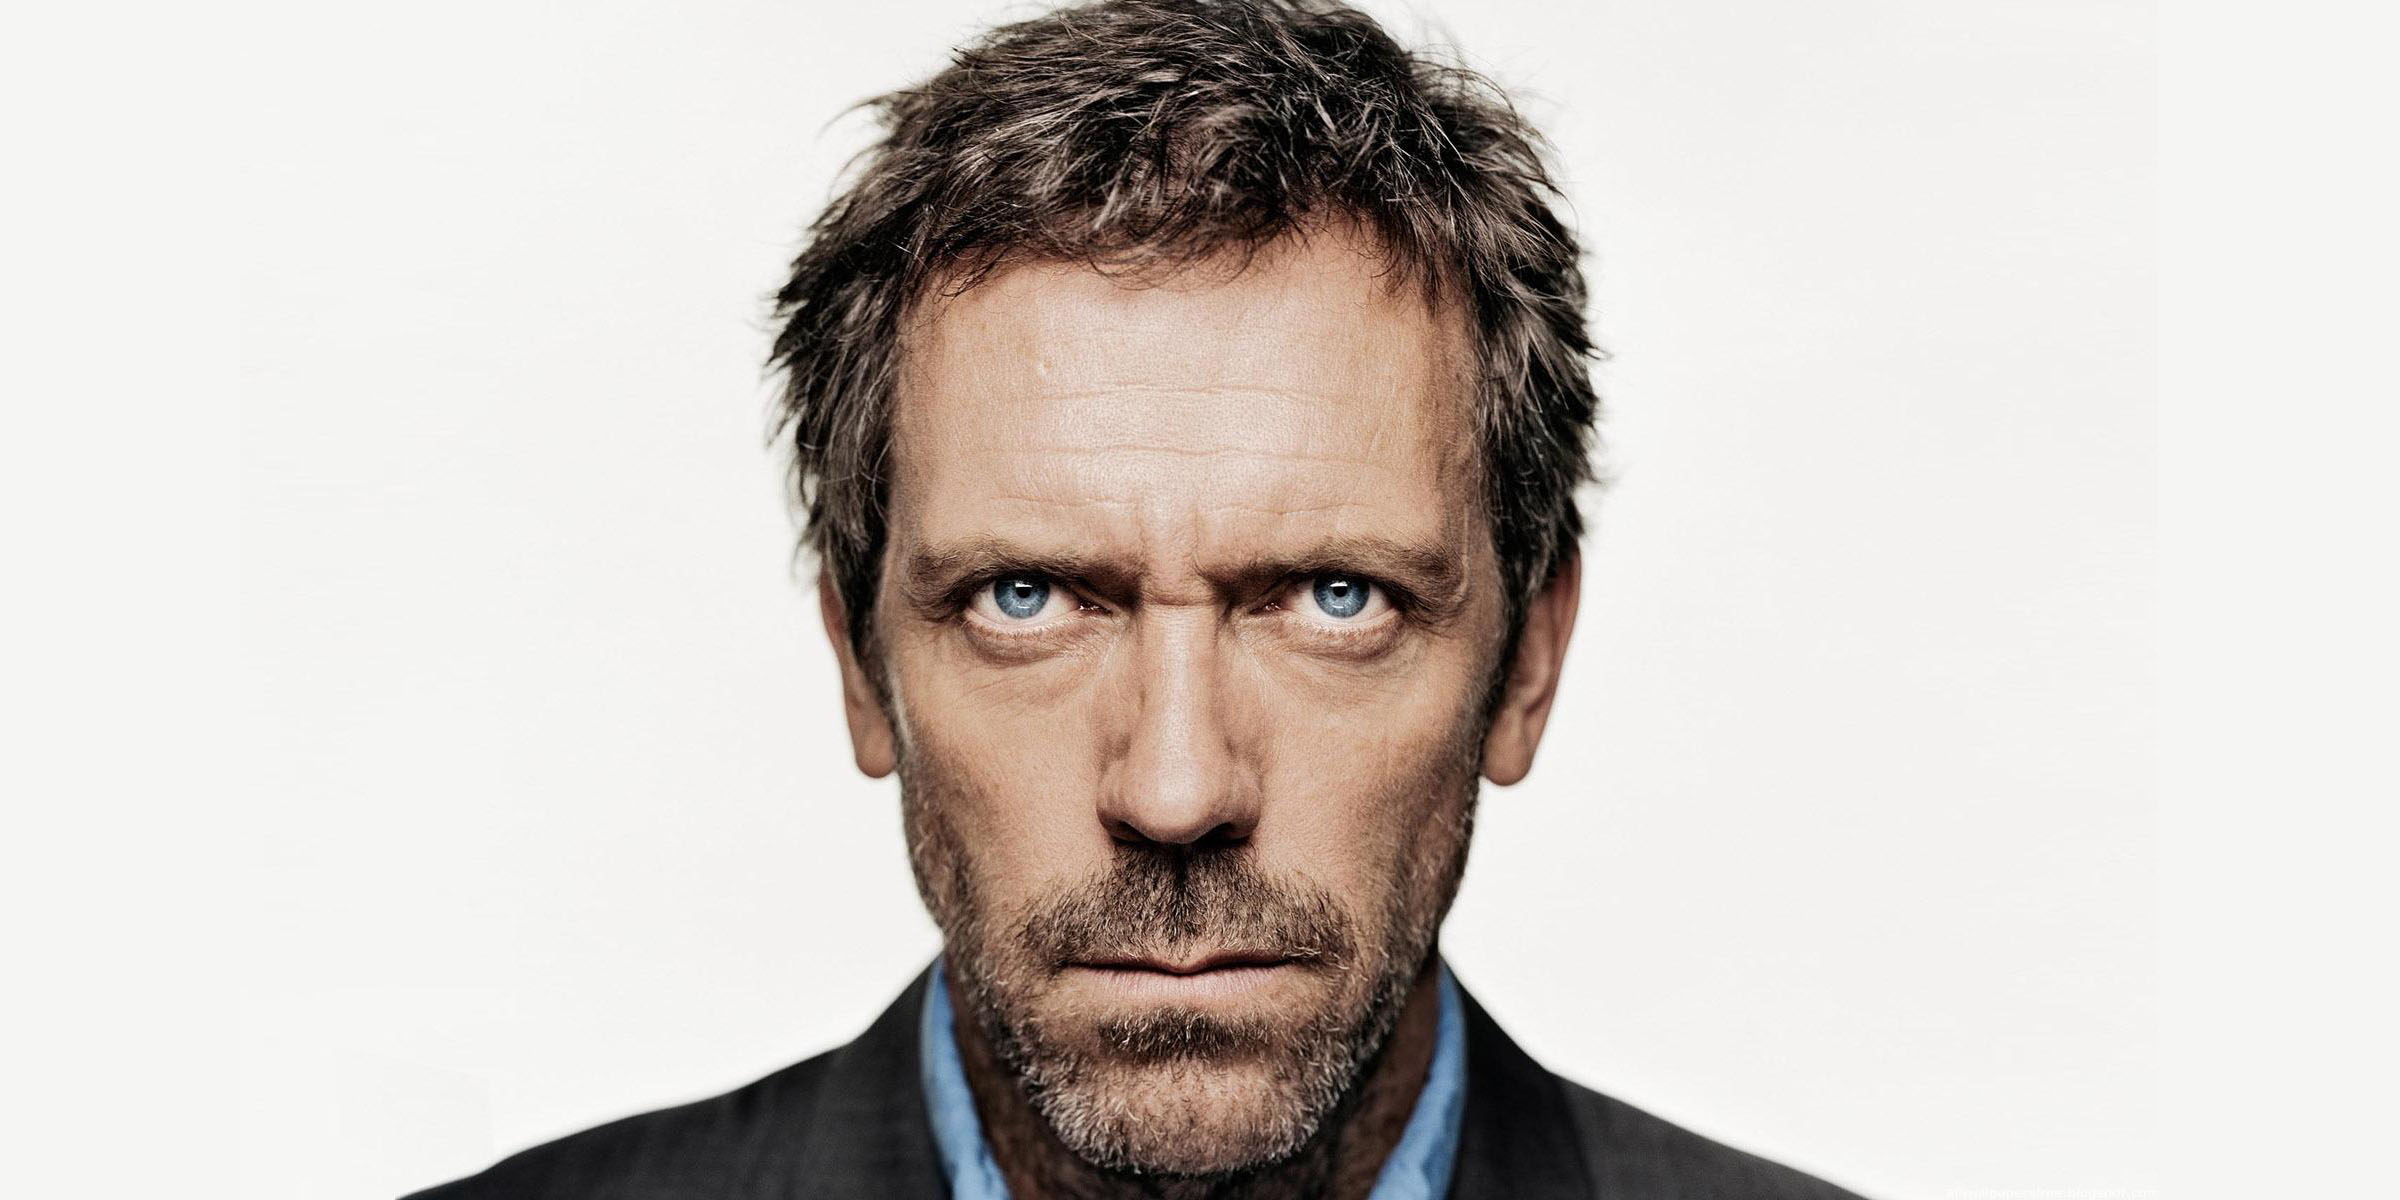 THE DOC(MANHATTAN) IS IN – DR. HOUSE – MEDICAL DIVISION